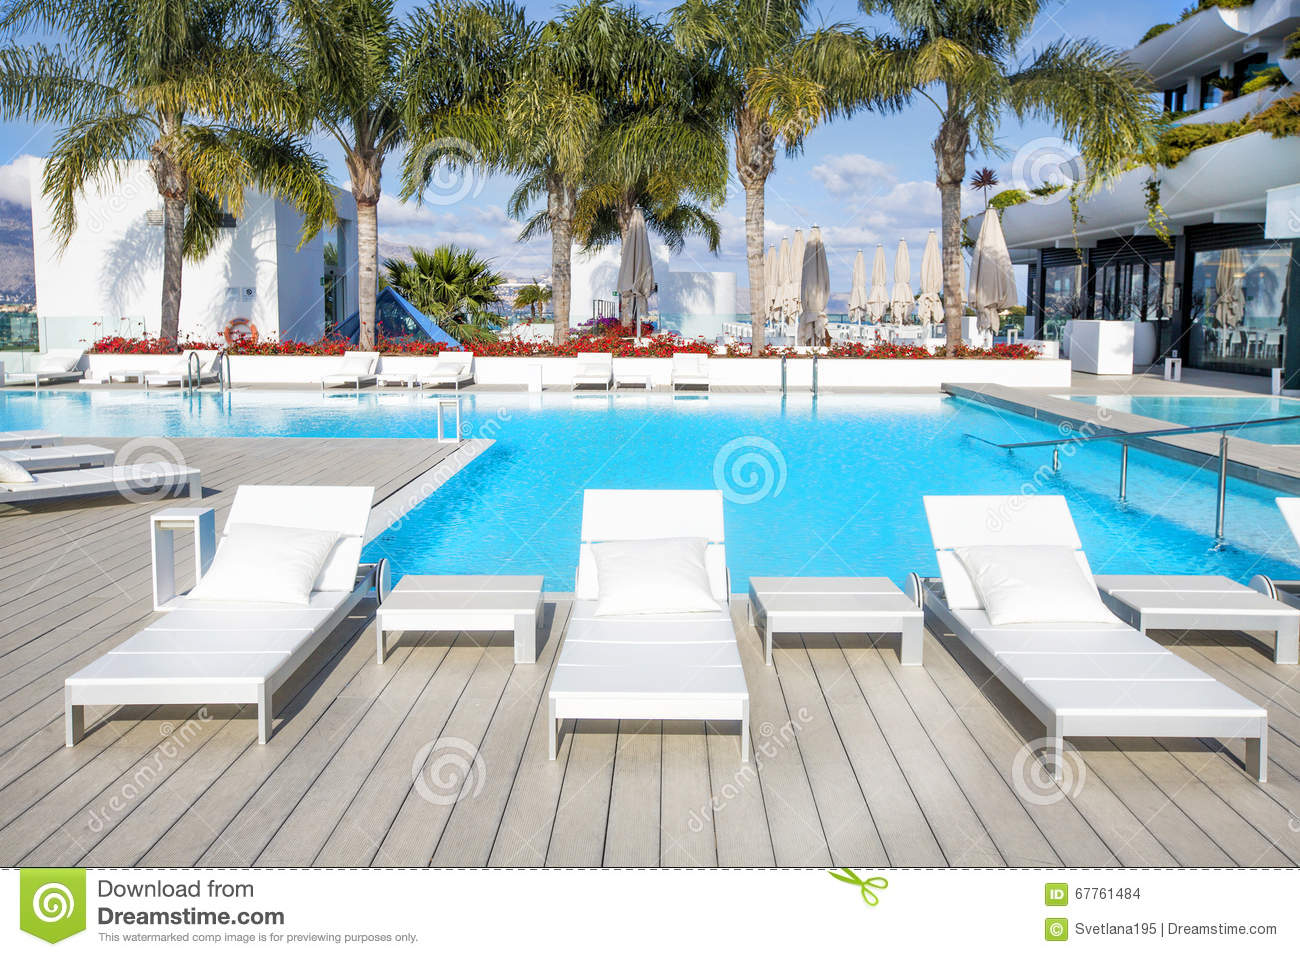 Pool Beds sunbathing beds at the swimming pool royalty free stock images